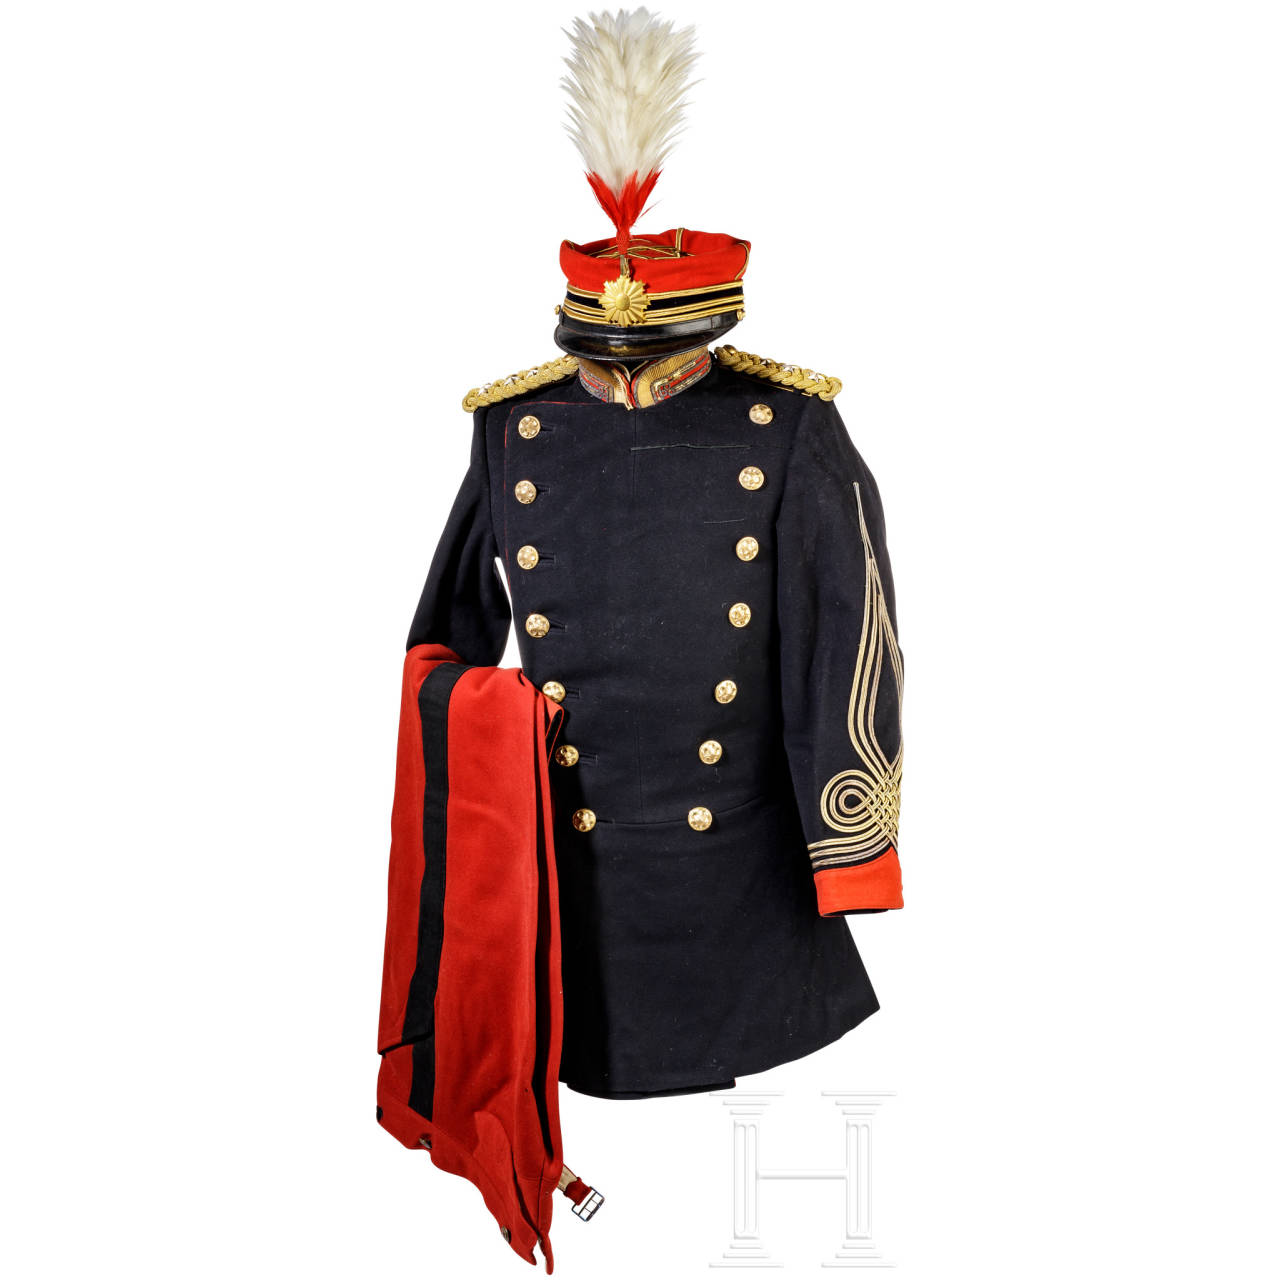 Uniform ensemble for officers of the military police (Kempeitai), Meiji period